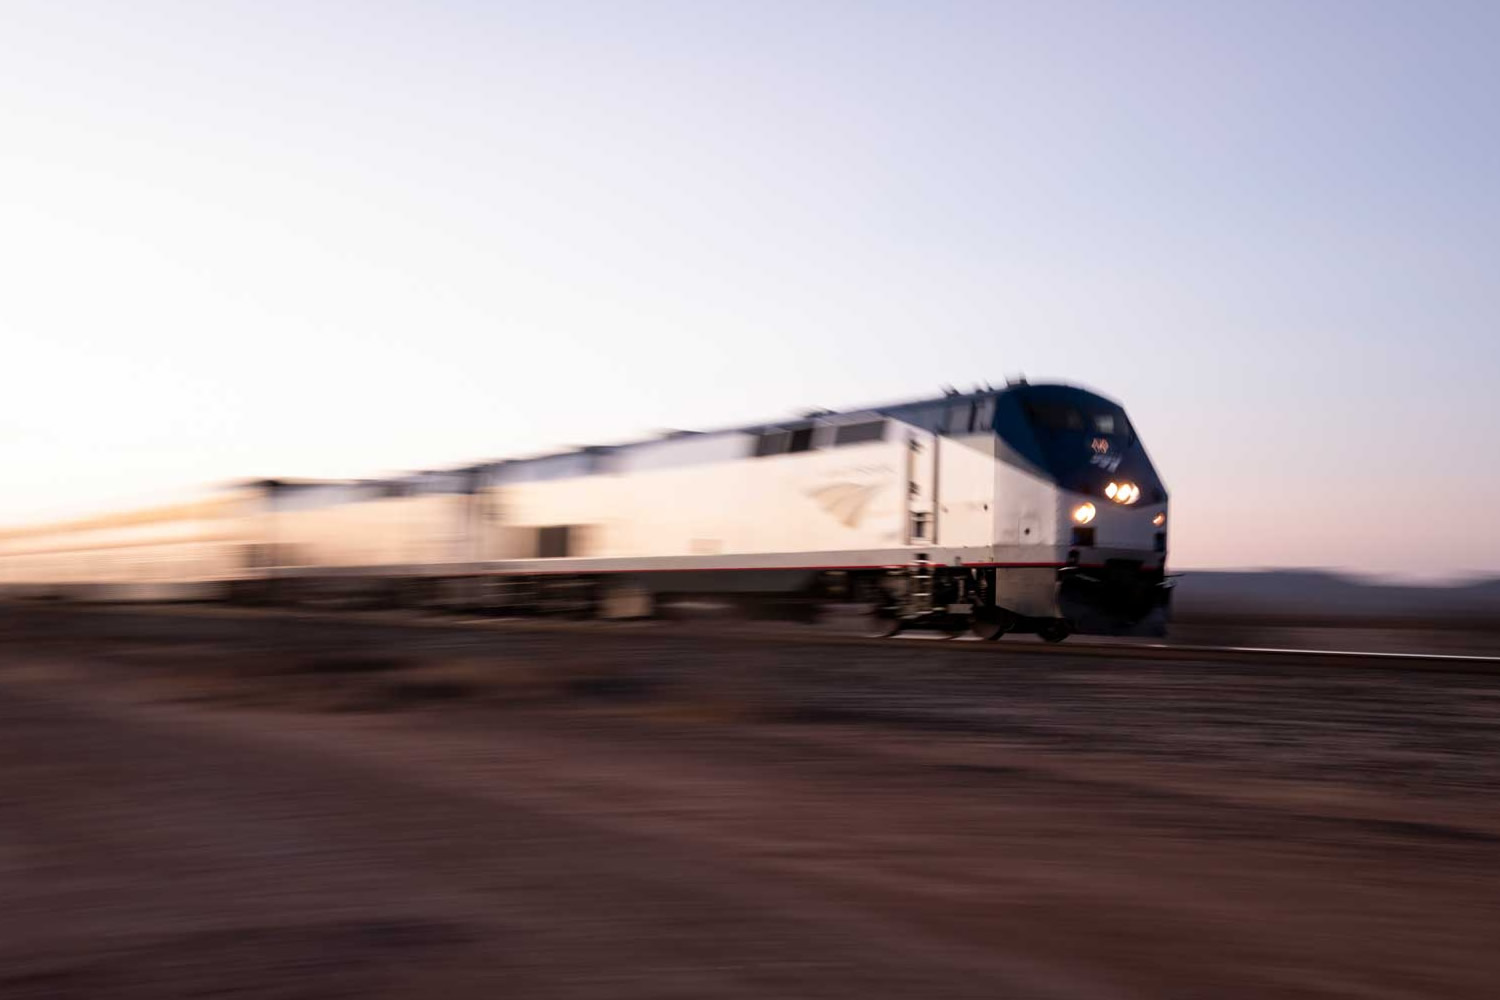 Get 50% Off Train Fares in Honor of Amtrak's 50th Anniversary